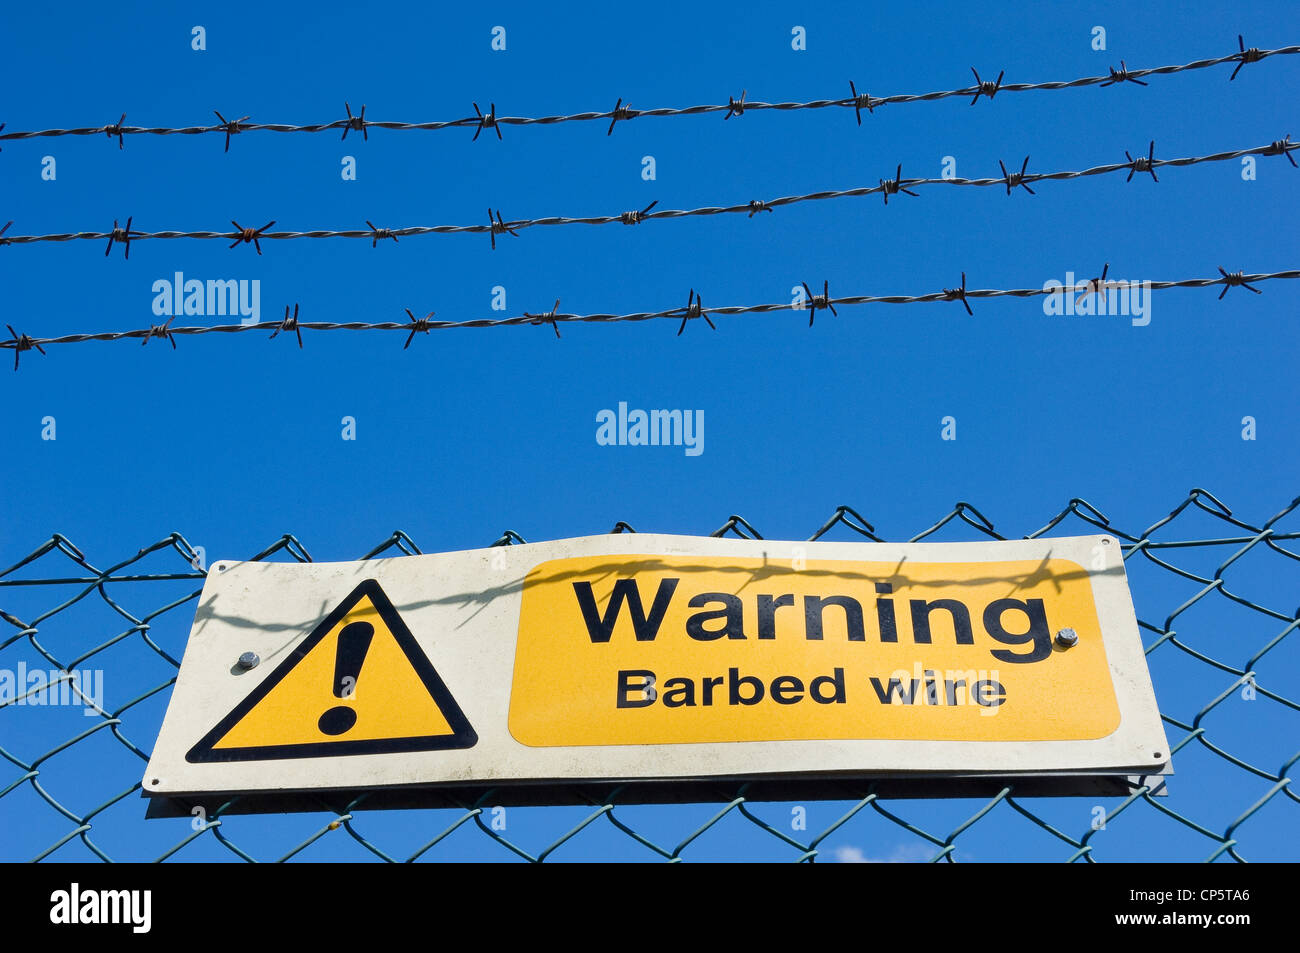 Warning sign on a barbed wire fence against bright blue sky - Stock Image